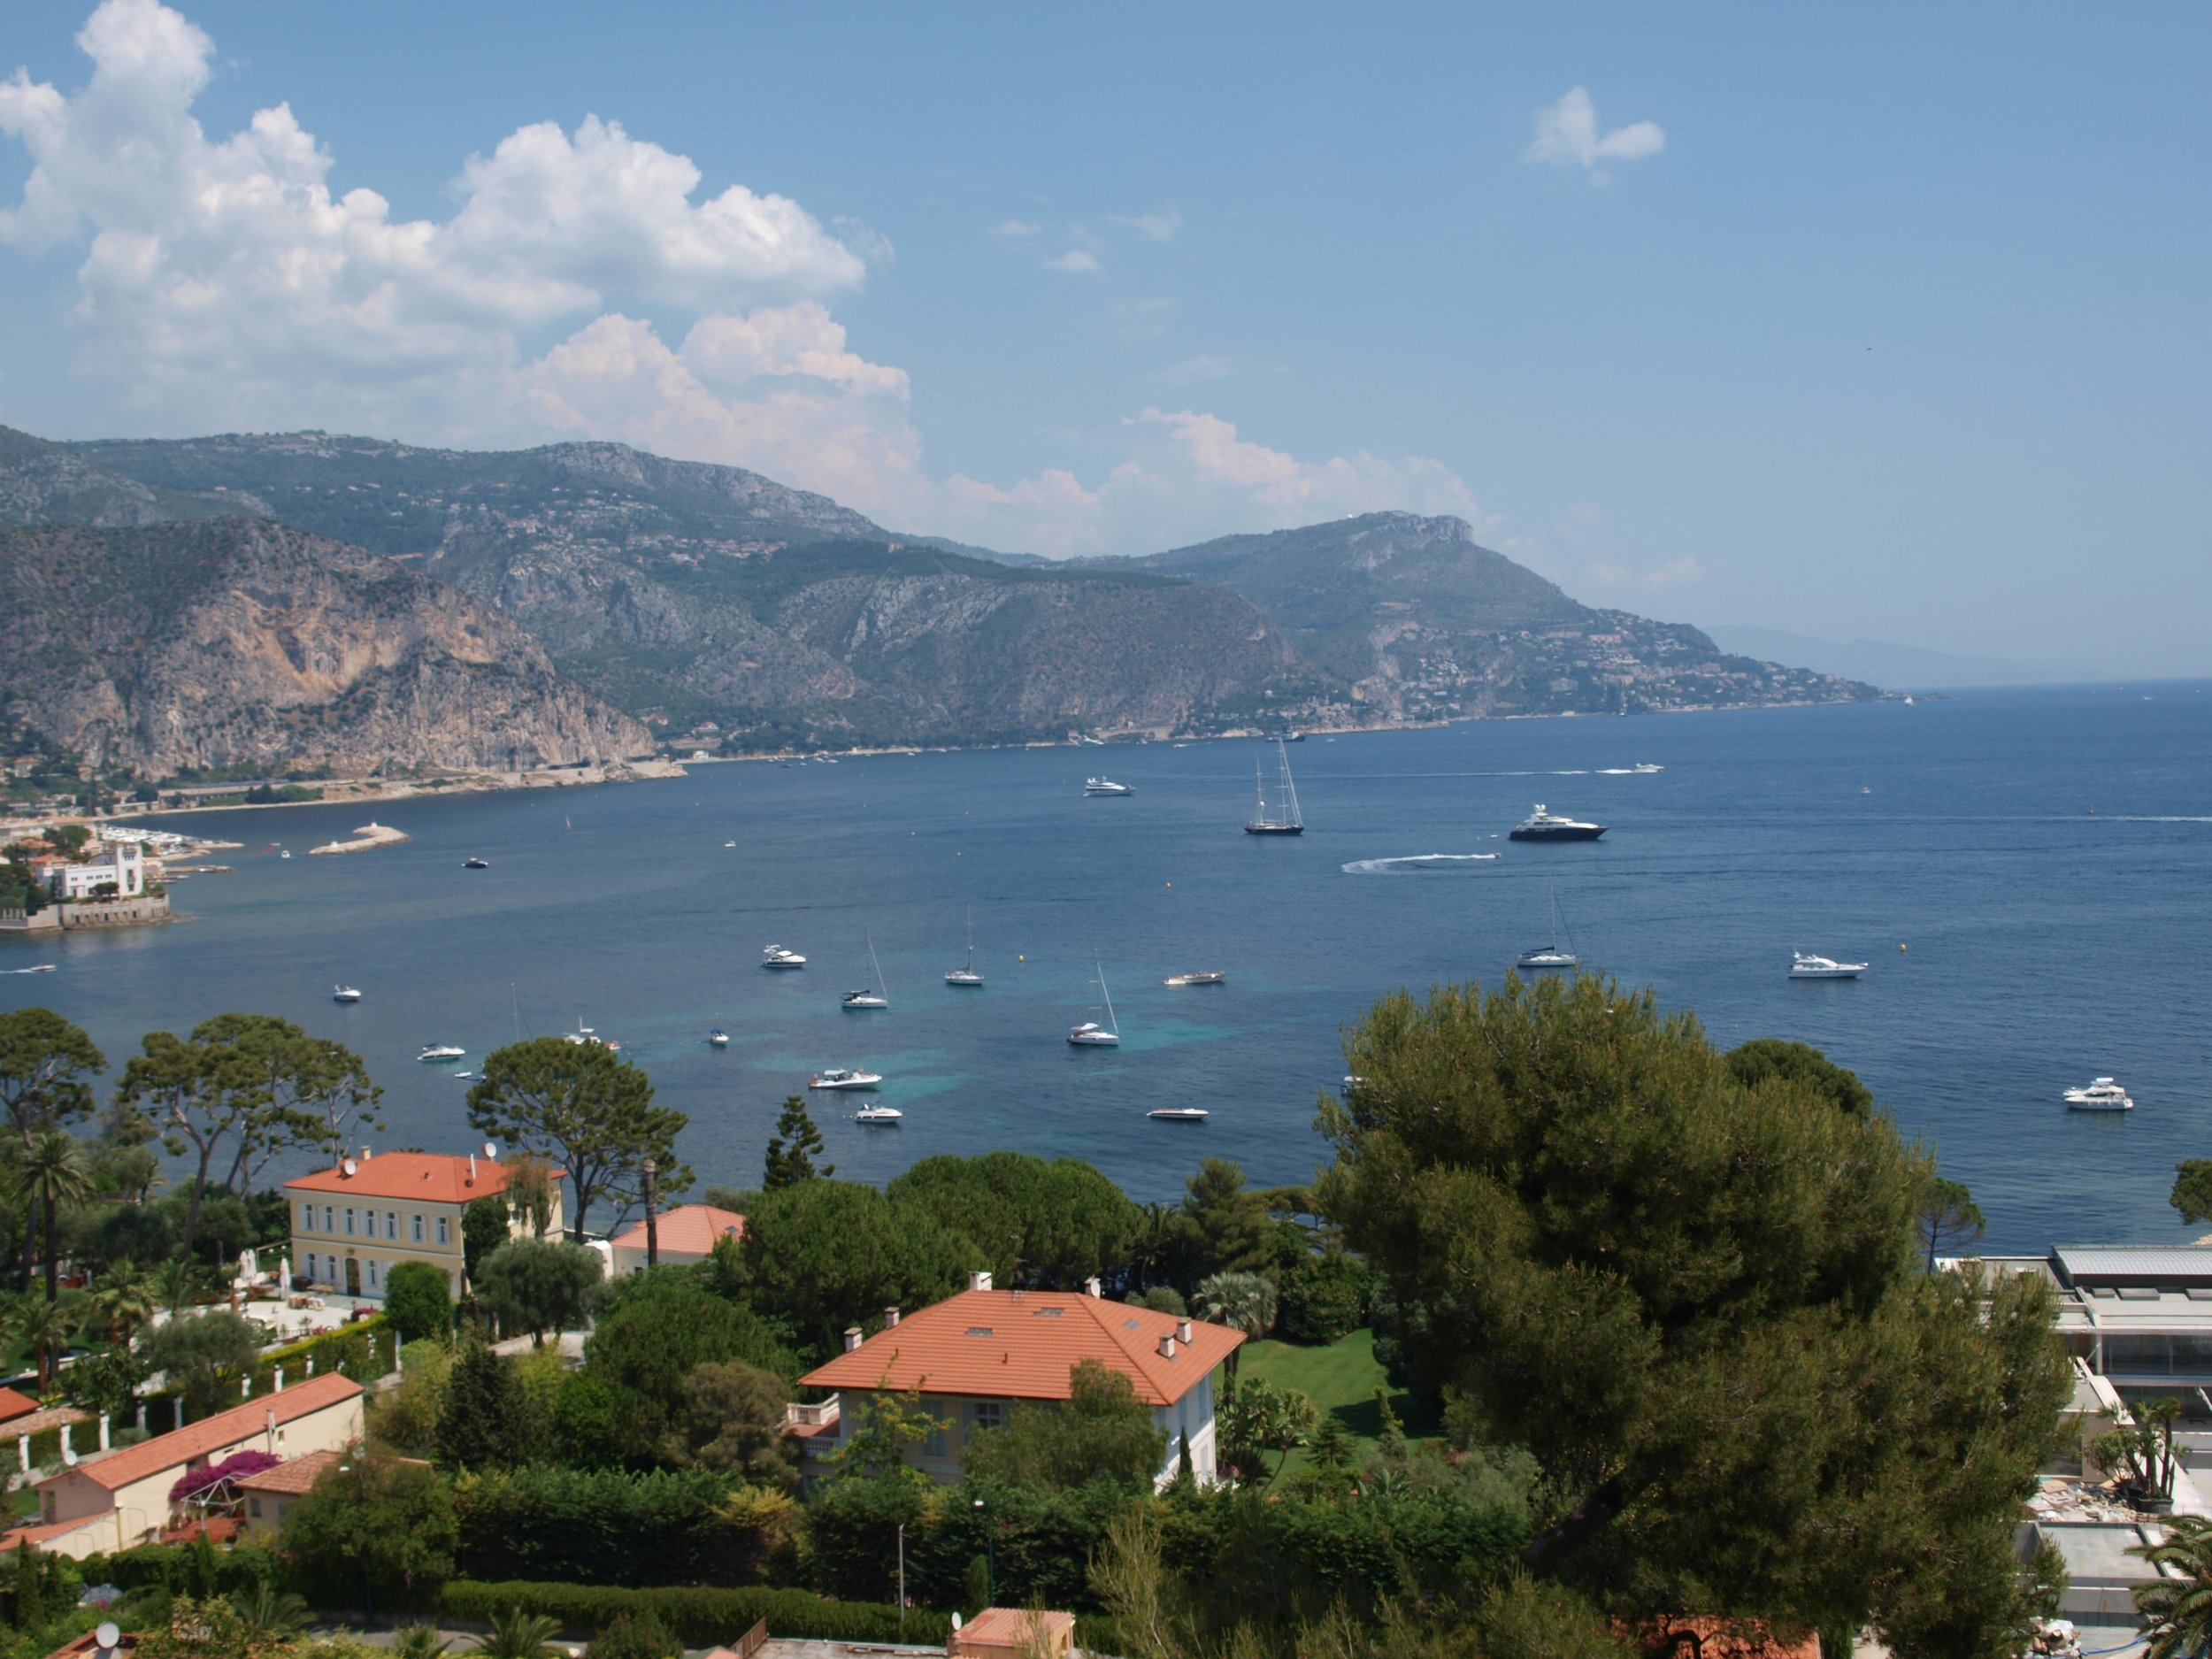 The view from Saint-Jean-Cap-Ferrat